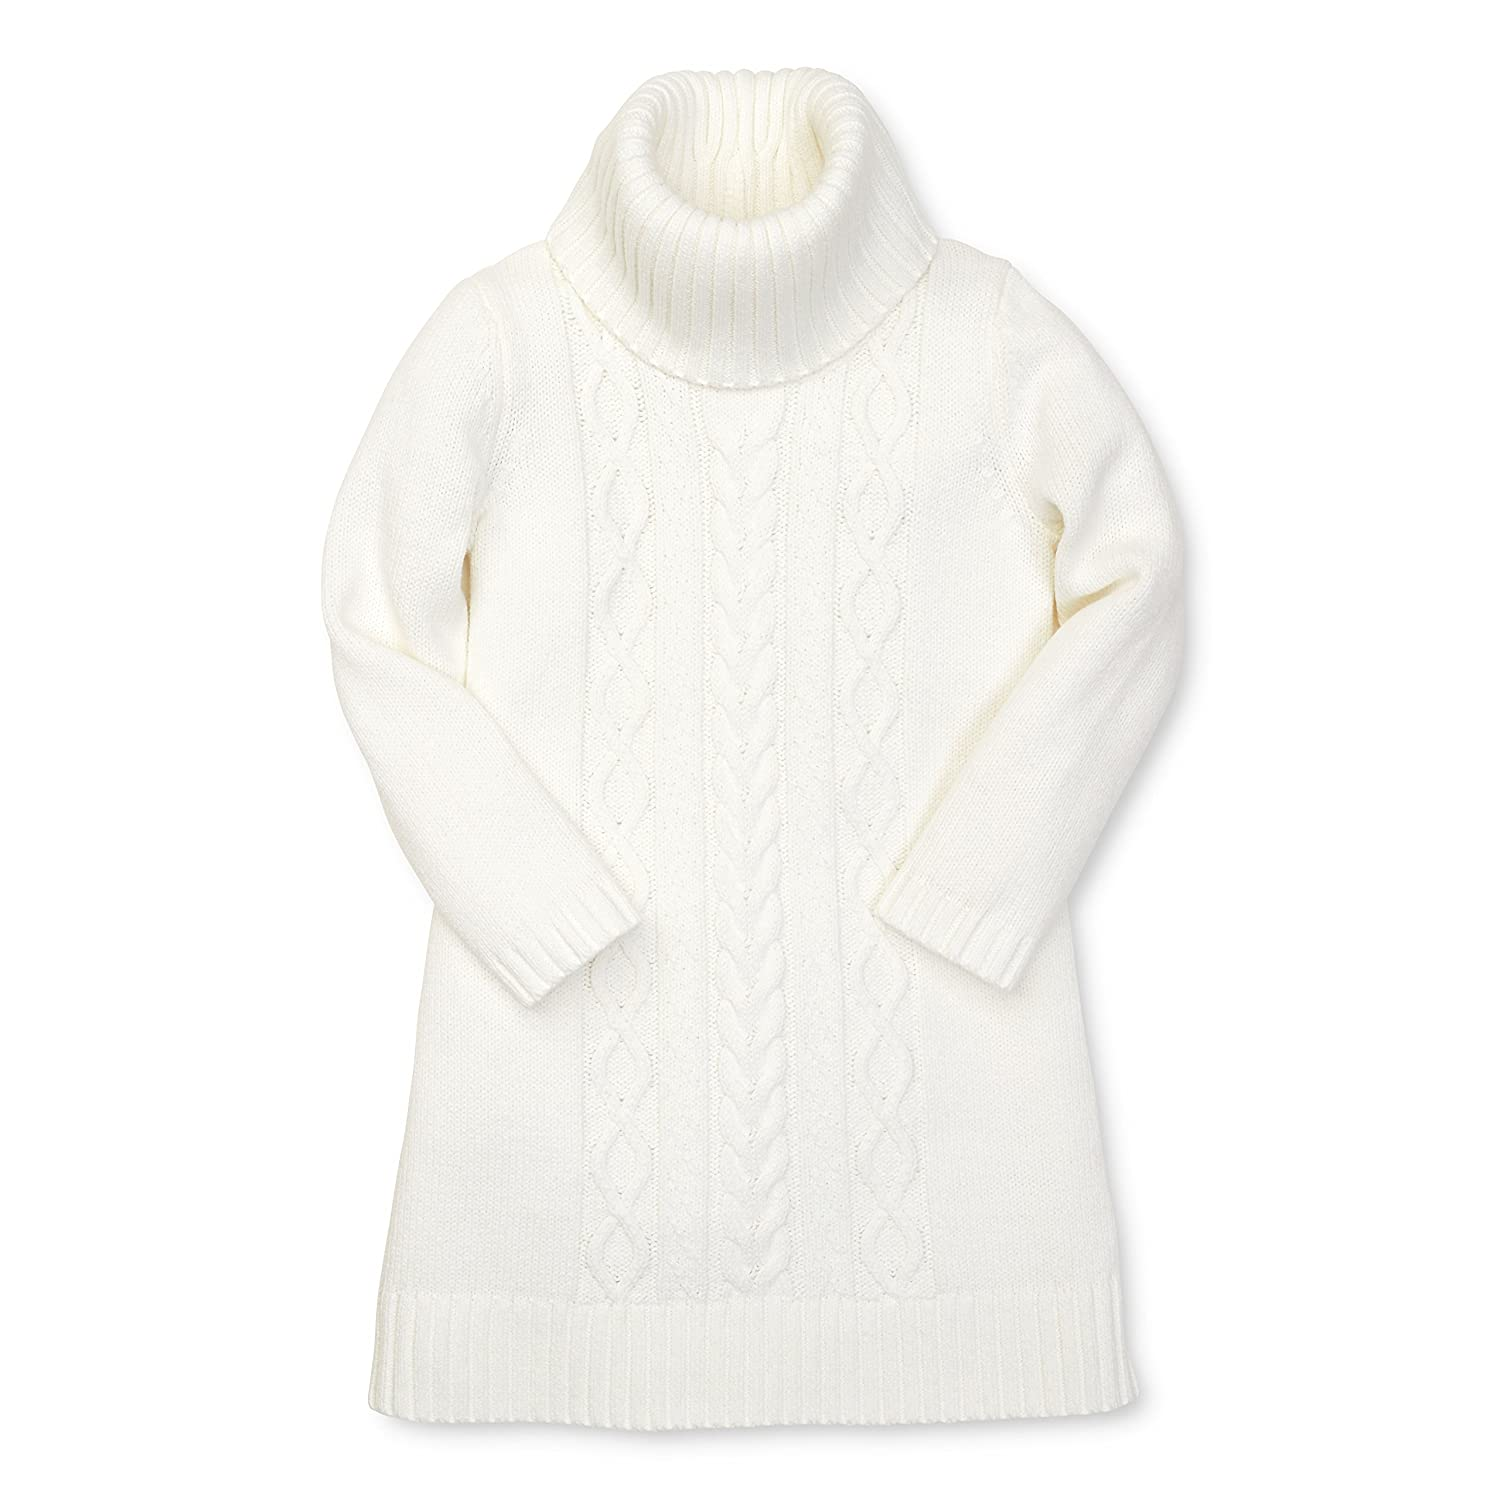 Hope & Henry Girls Ivory Cable Sweater Dress